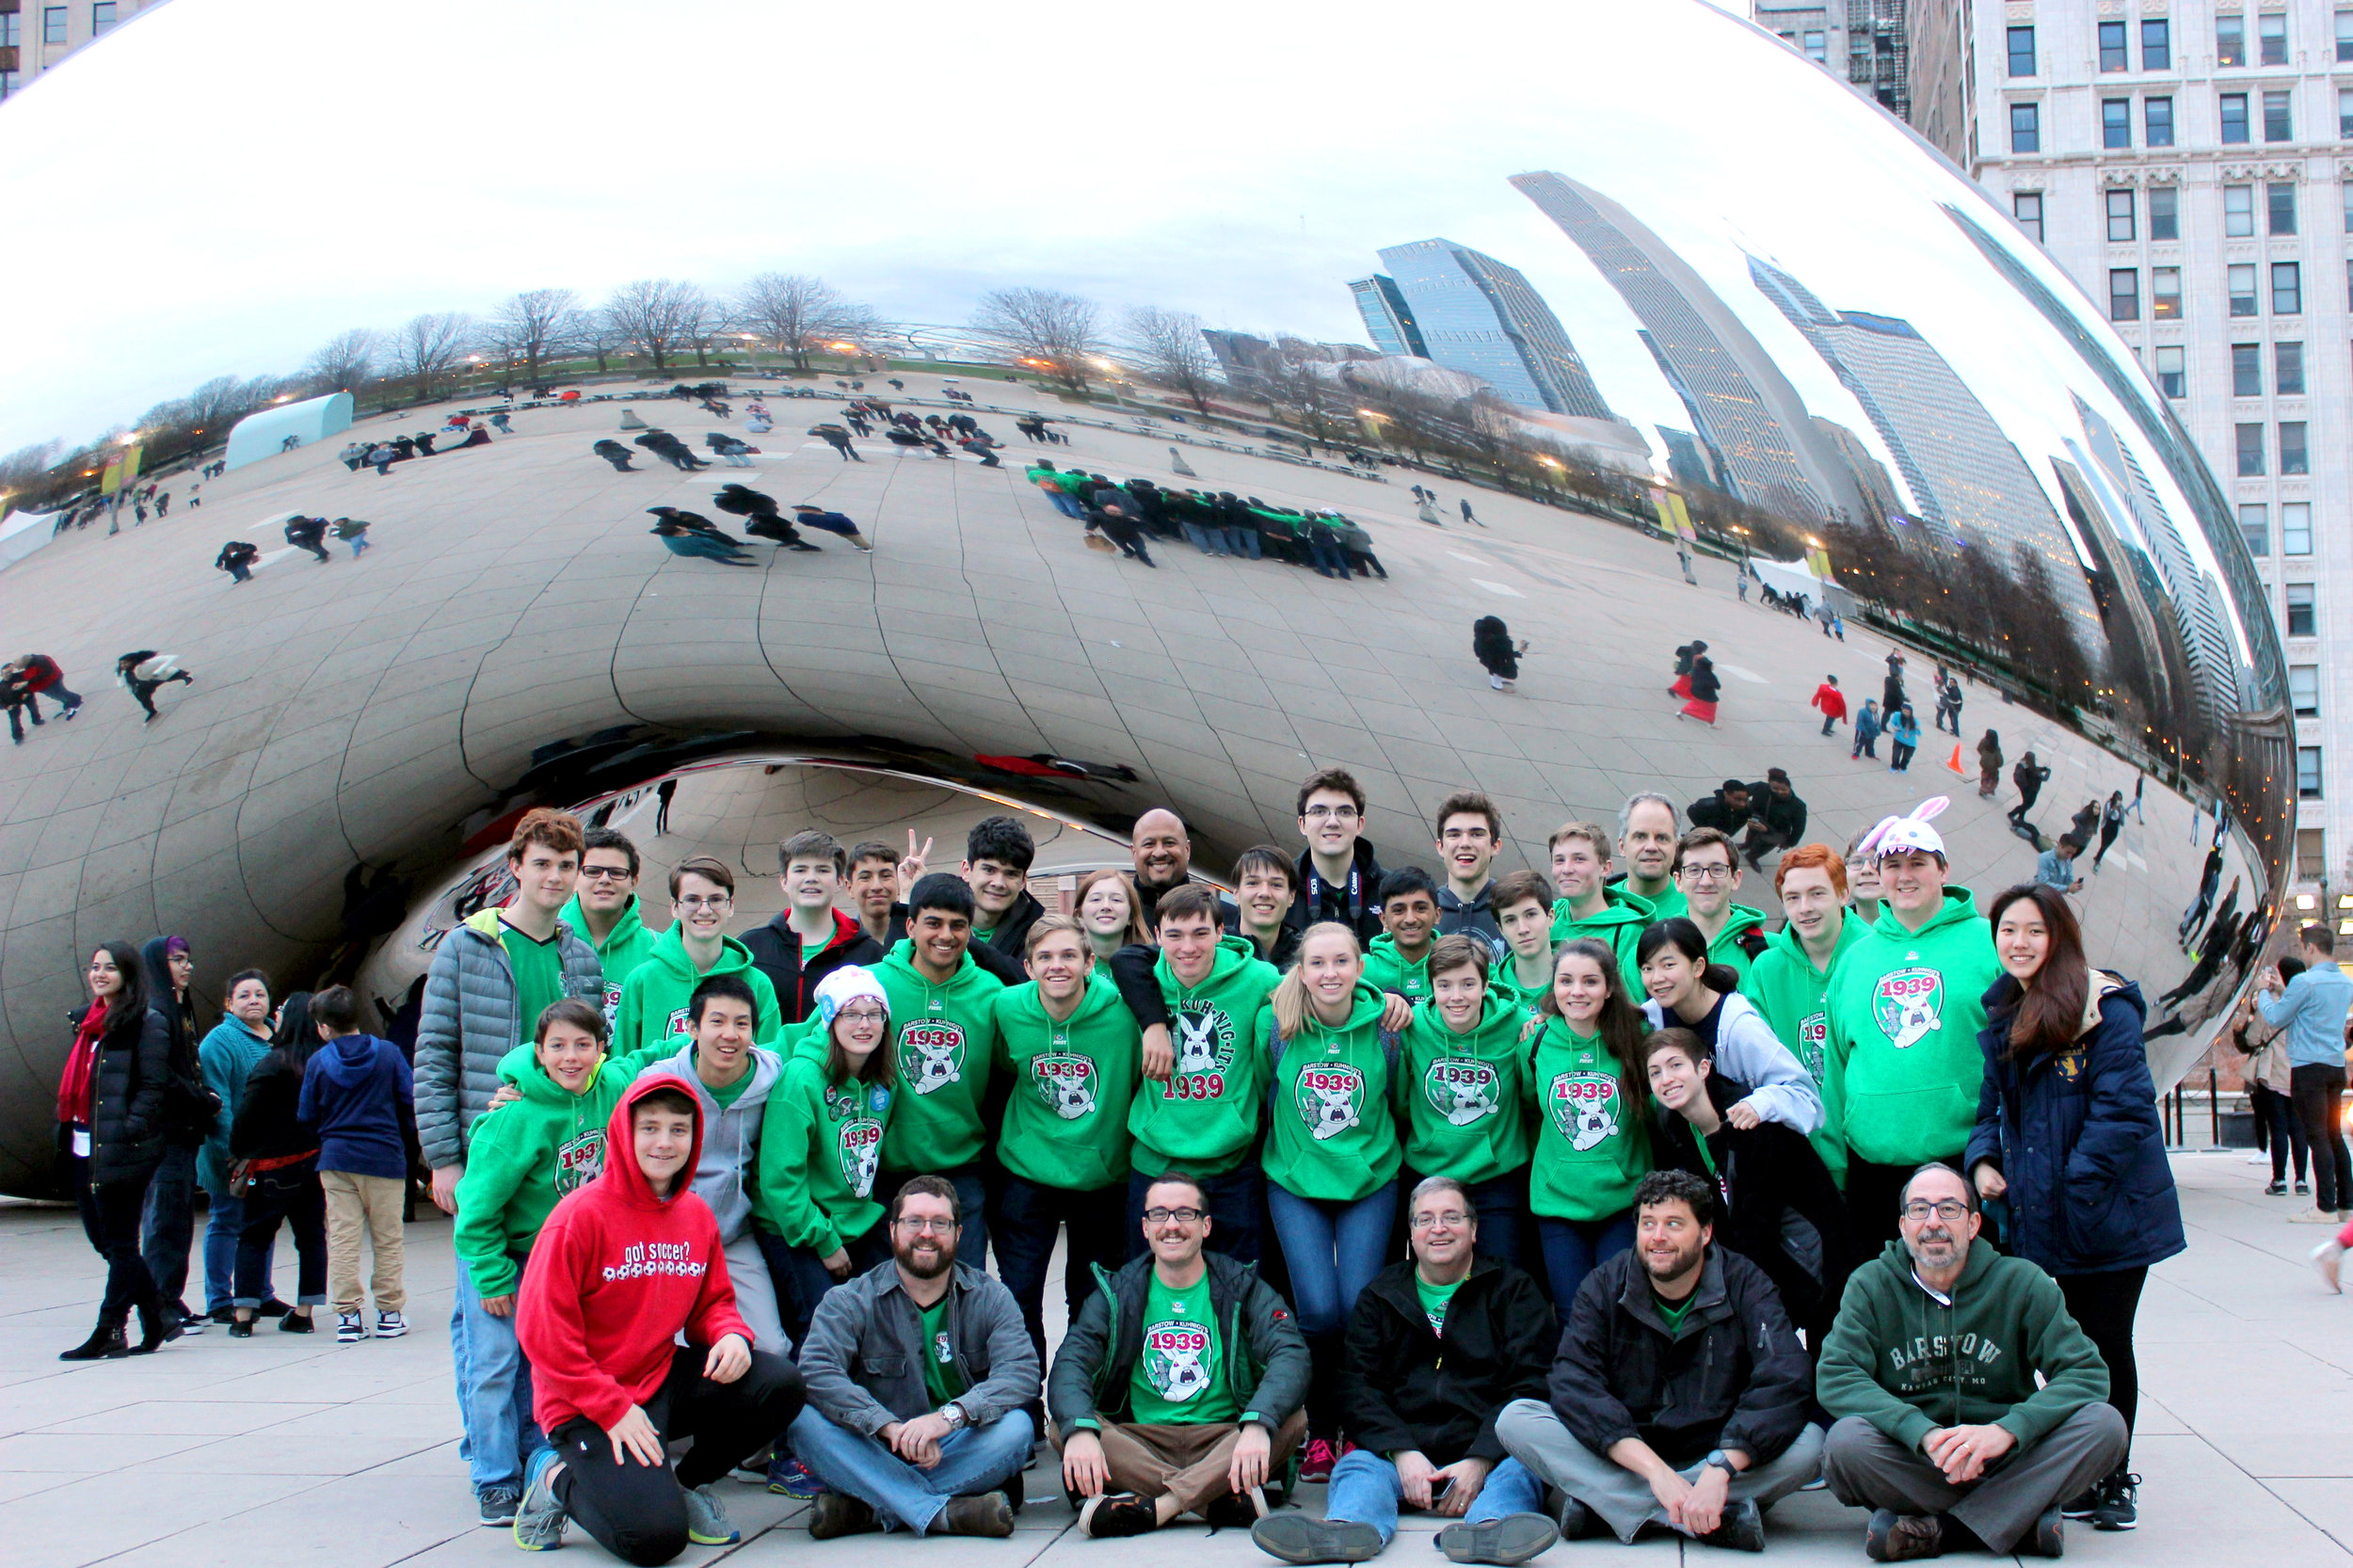 Copy of ChicagoGroupBeanPic.jpg